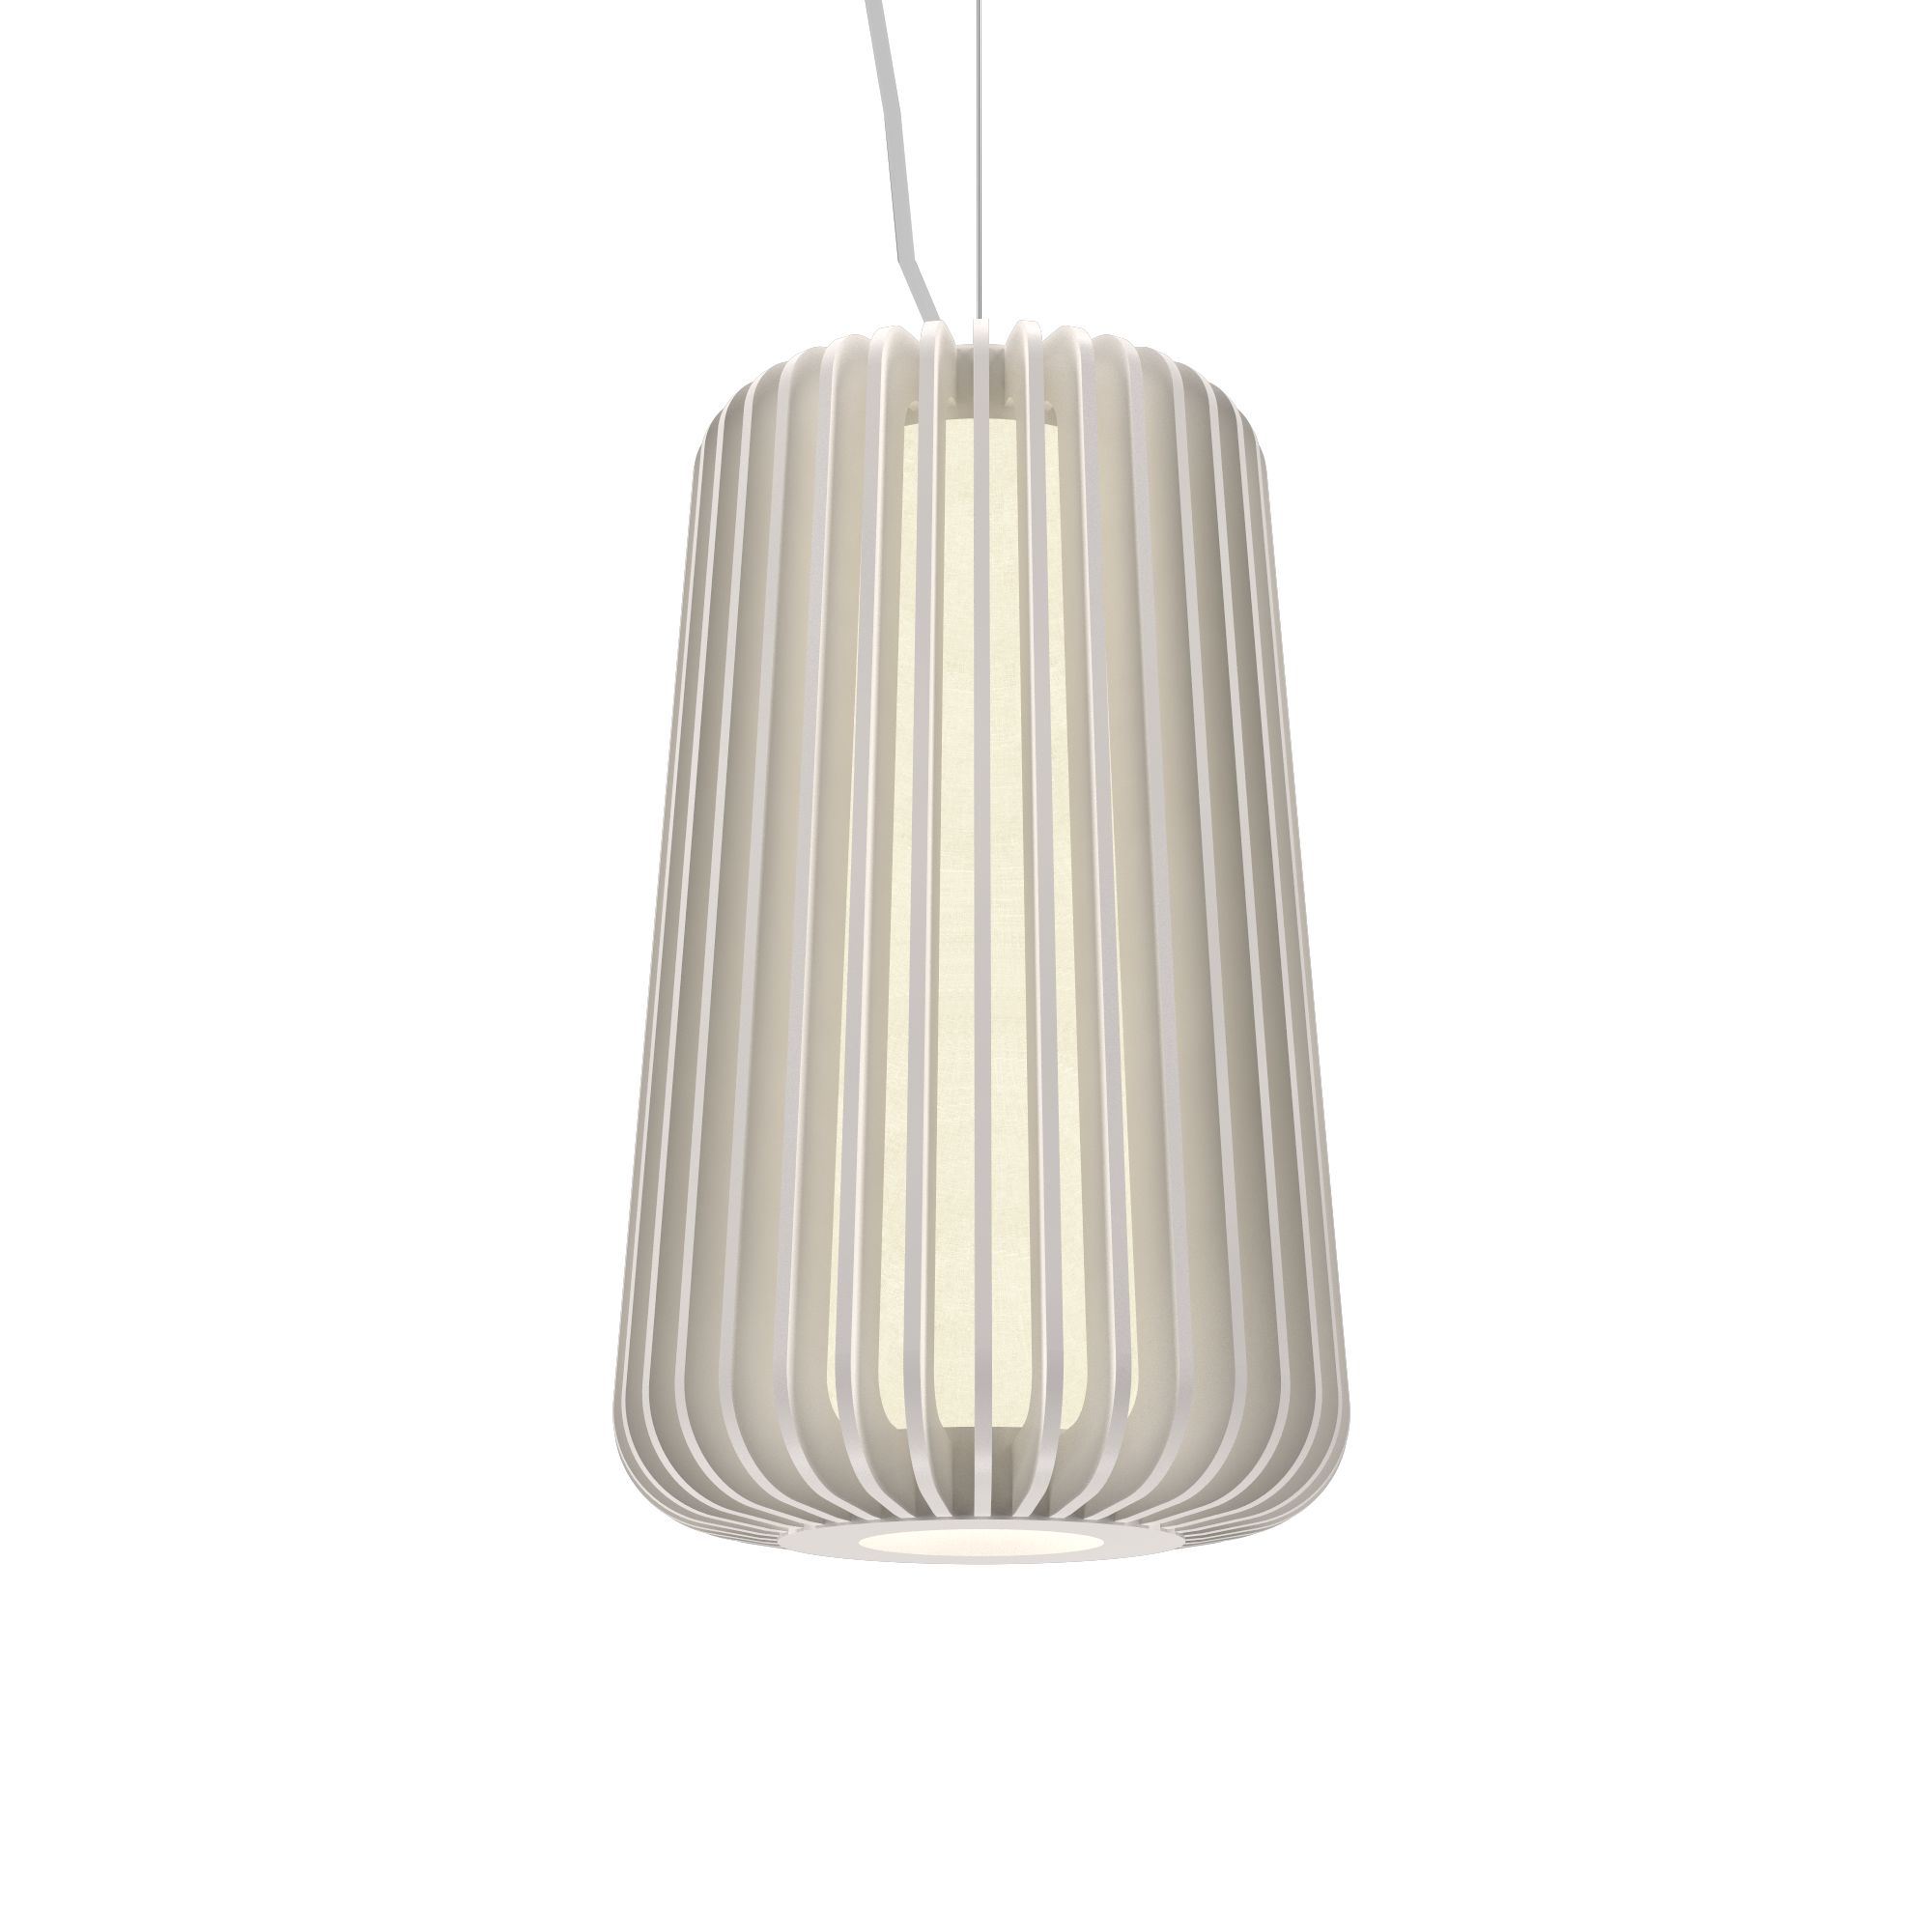 Pendant Lamp Accord Stecche Di Legno 1427 - Stecche Di Legno Line Accord Lighting | 25. Iredescent White